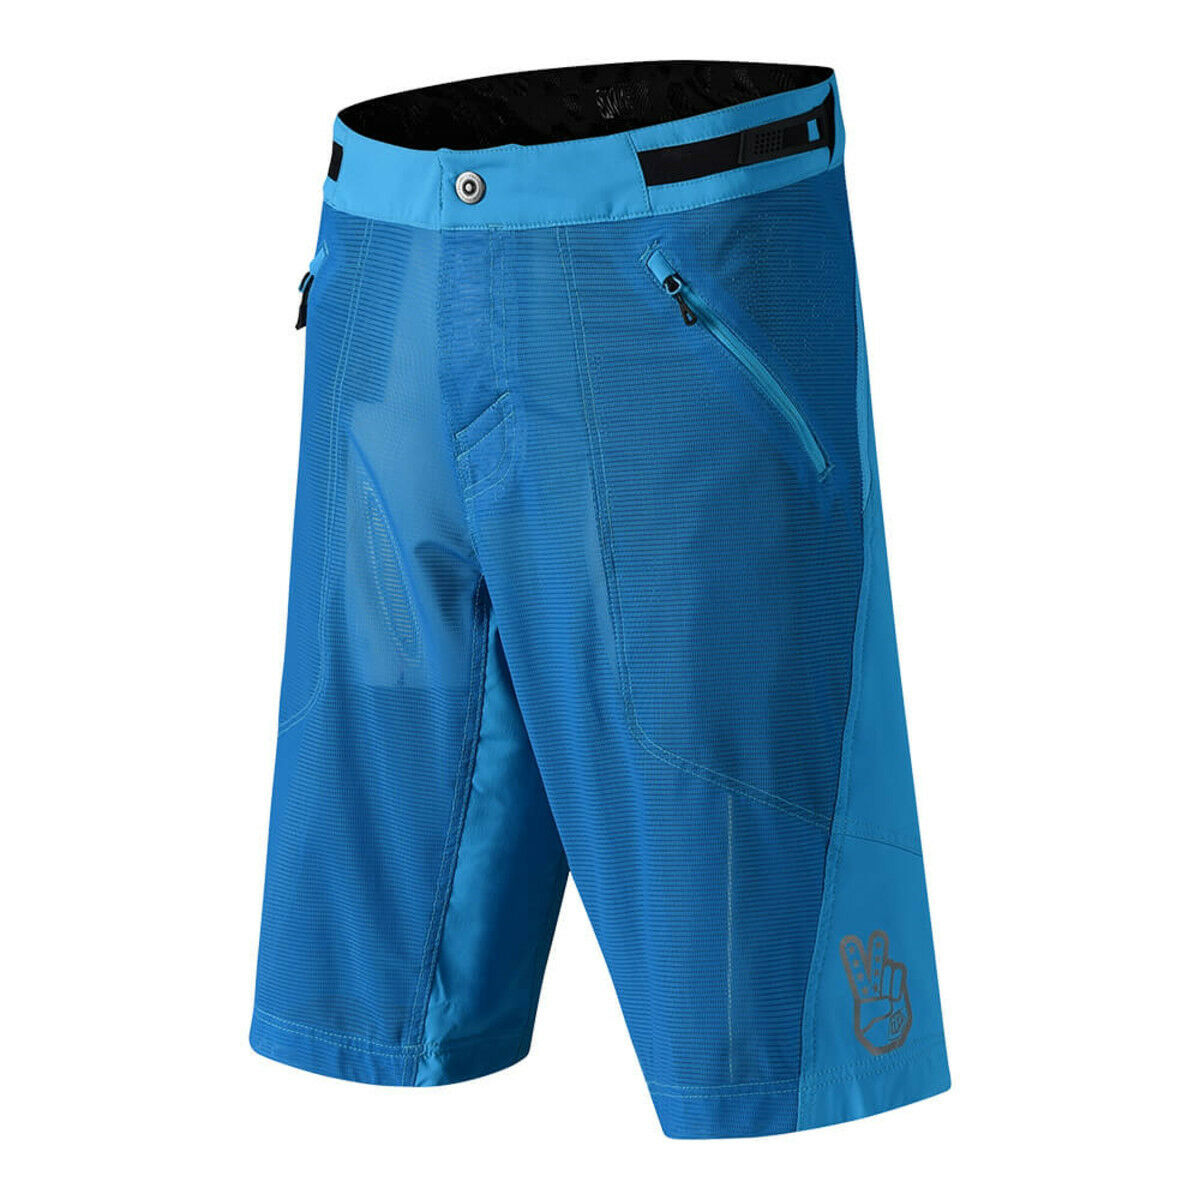 Troy  Lee Designs Mountain Bike Shorts SKYLINE AIR SHORT; OCEAN 32  save on clearance